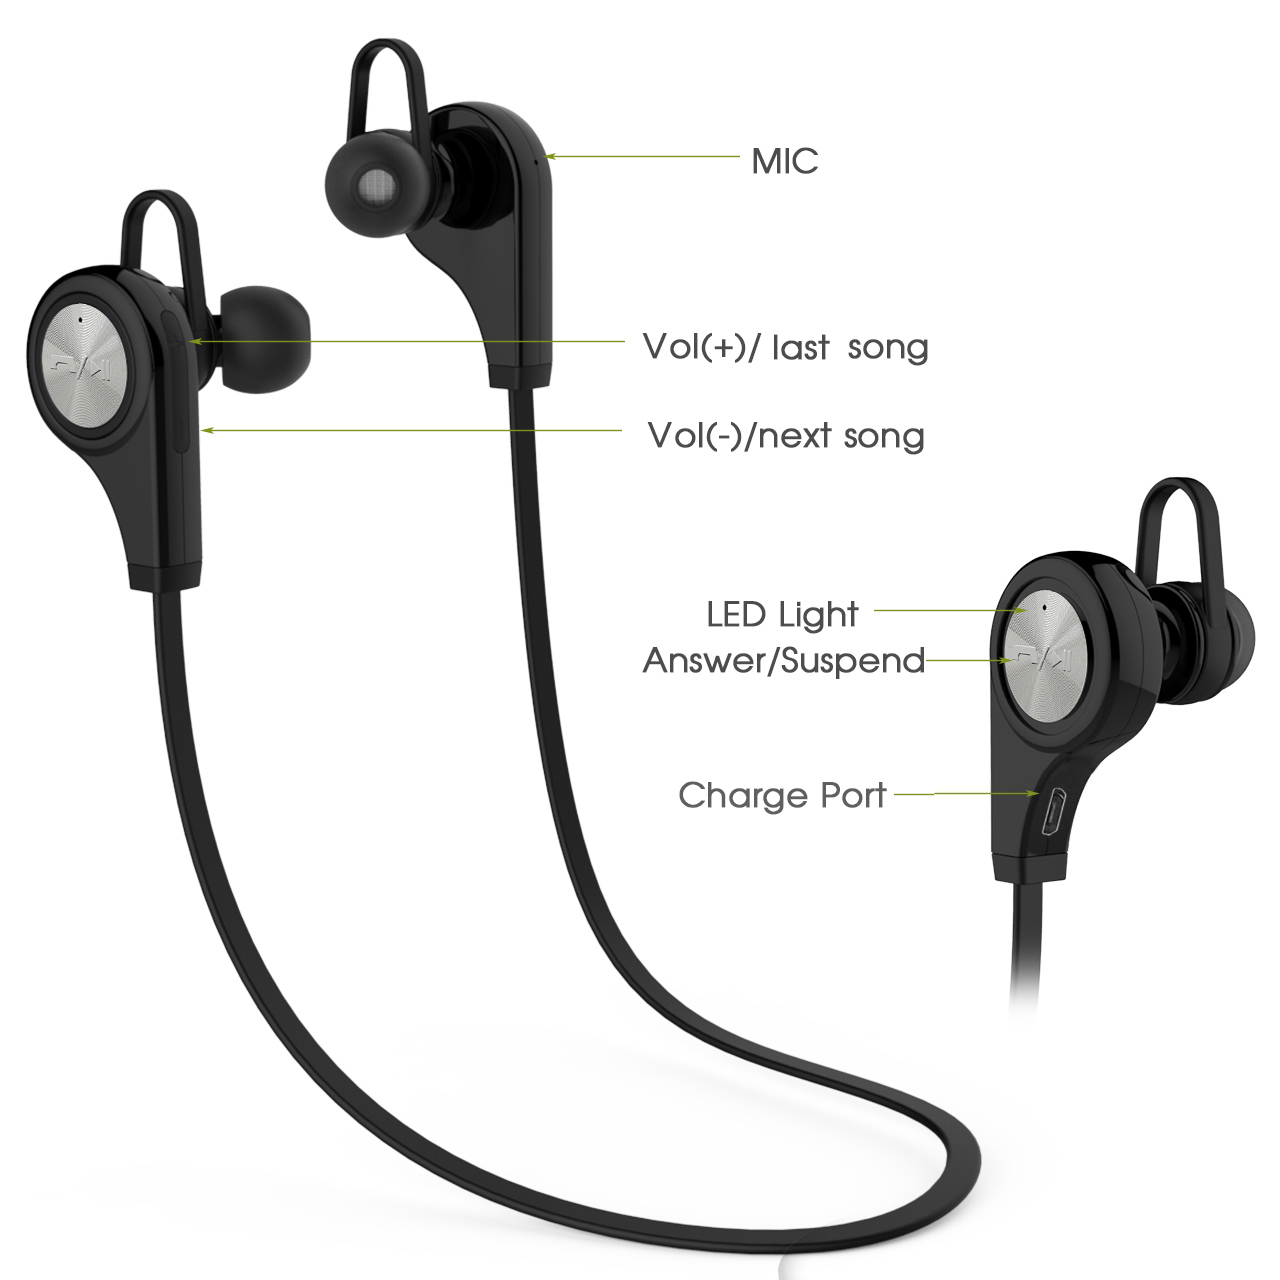 Q9 Sports Bluetooth Headsets CSR4.1 Wireless Headphones In-ear Stereo Earphone with Microphone for iPhone7 Android lexin 2pcs max2 motorcycle bluetooth helmet intercommunicador wireless bt moto waterproof interphone intercom headsets